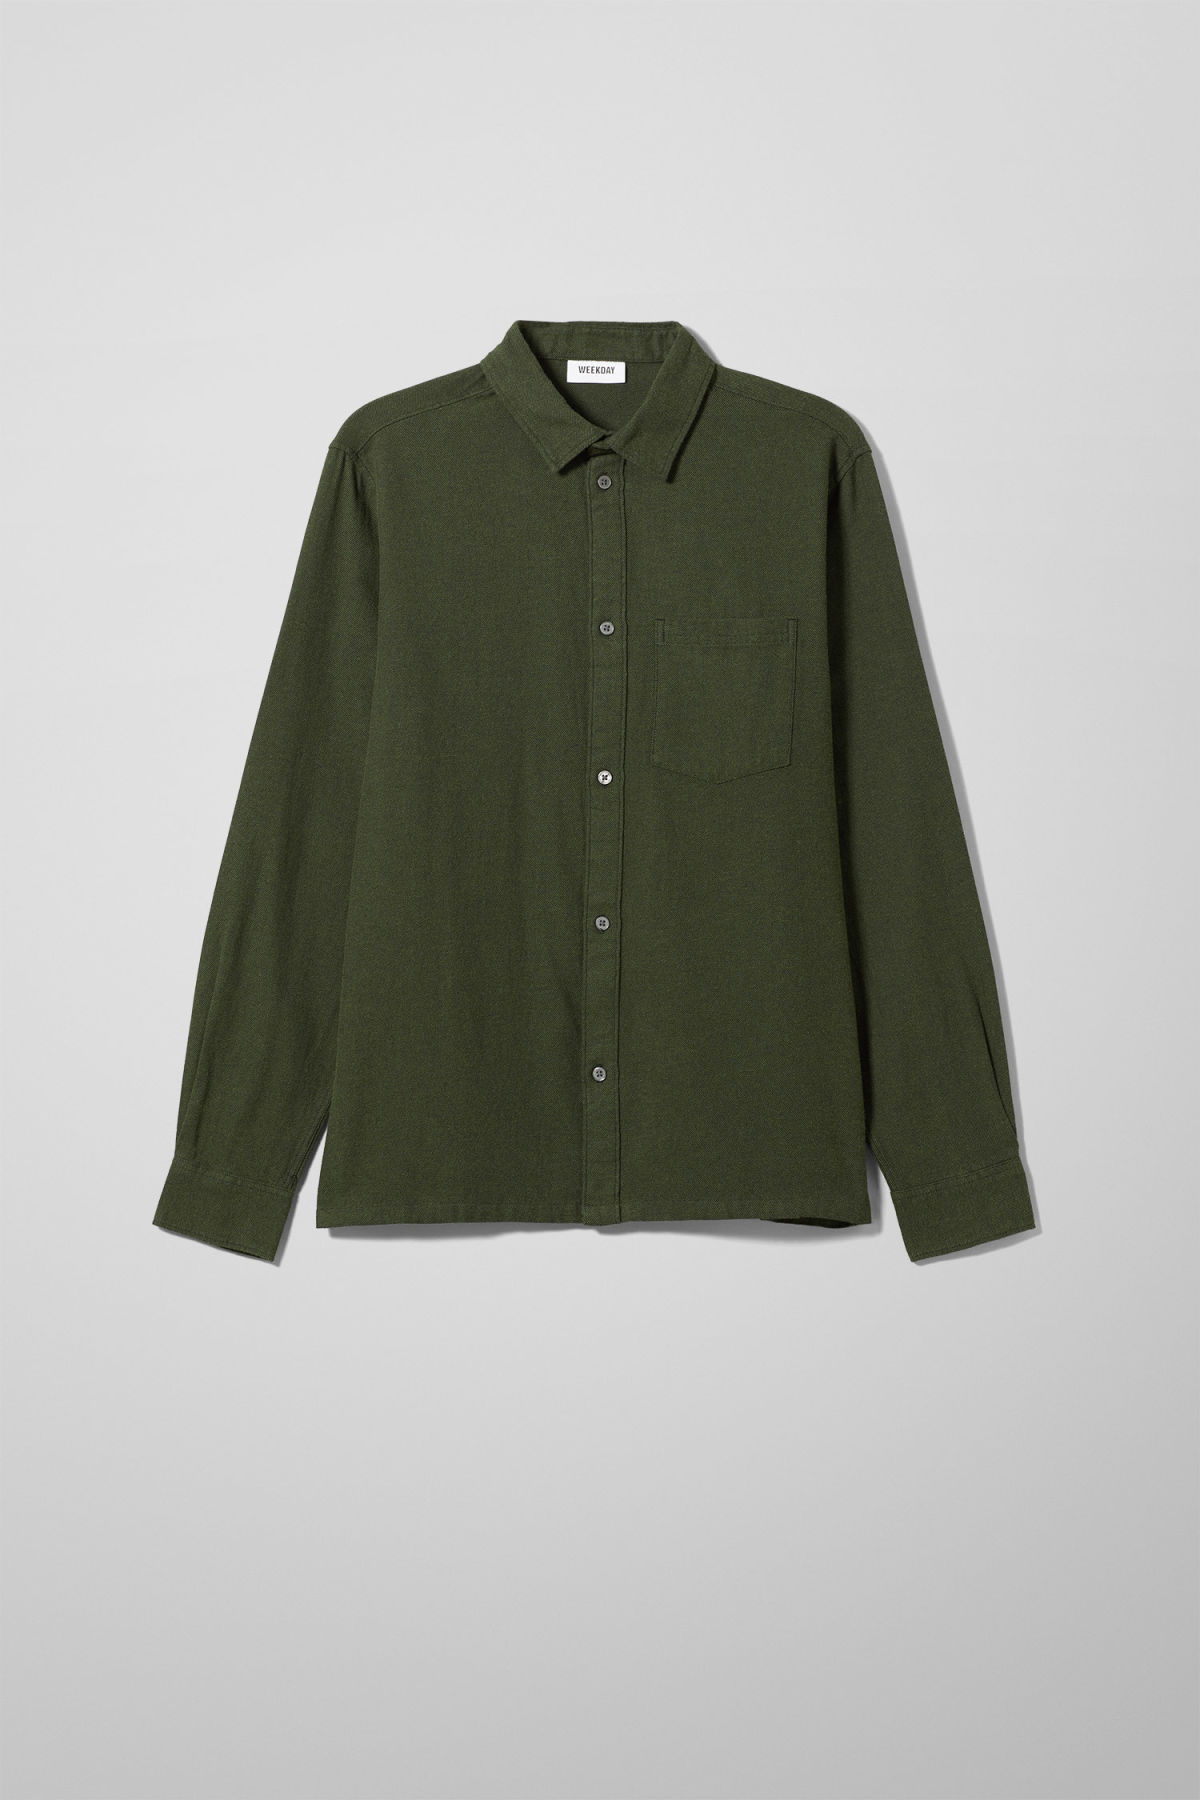 Wise Flannel Shirt - Green